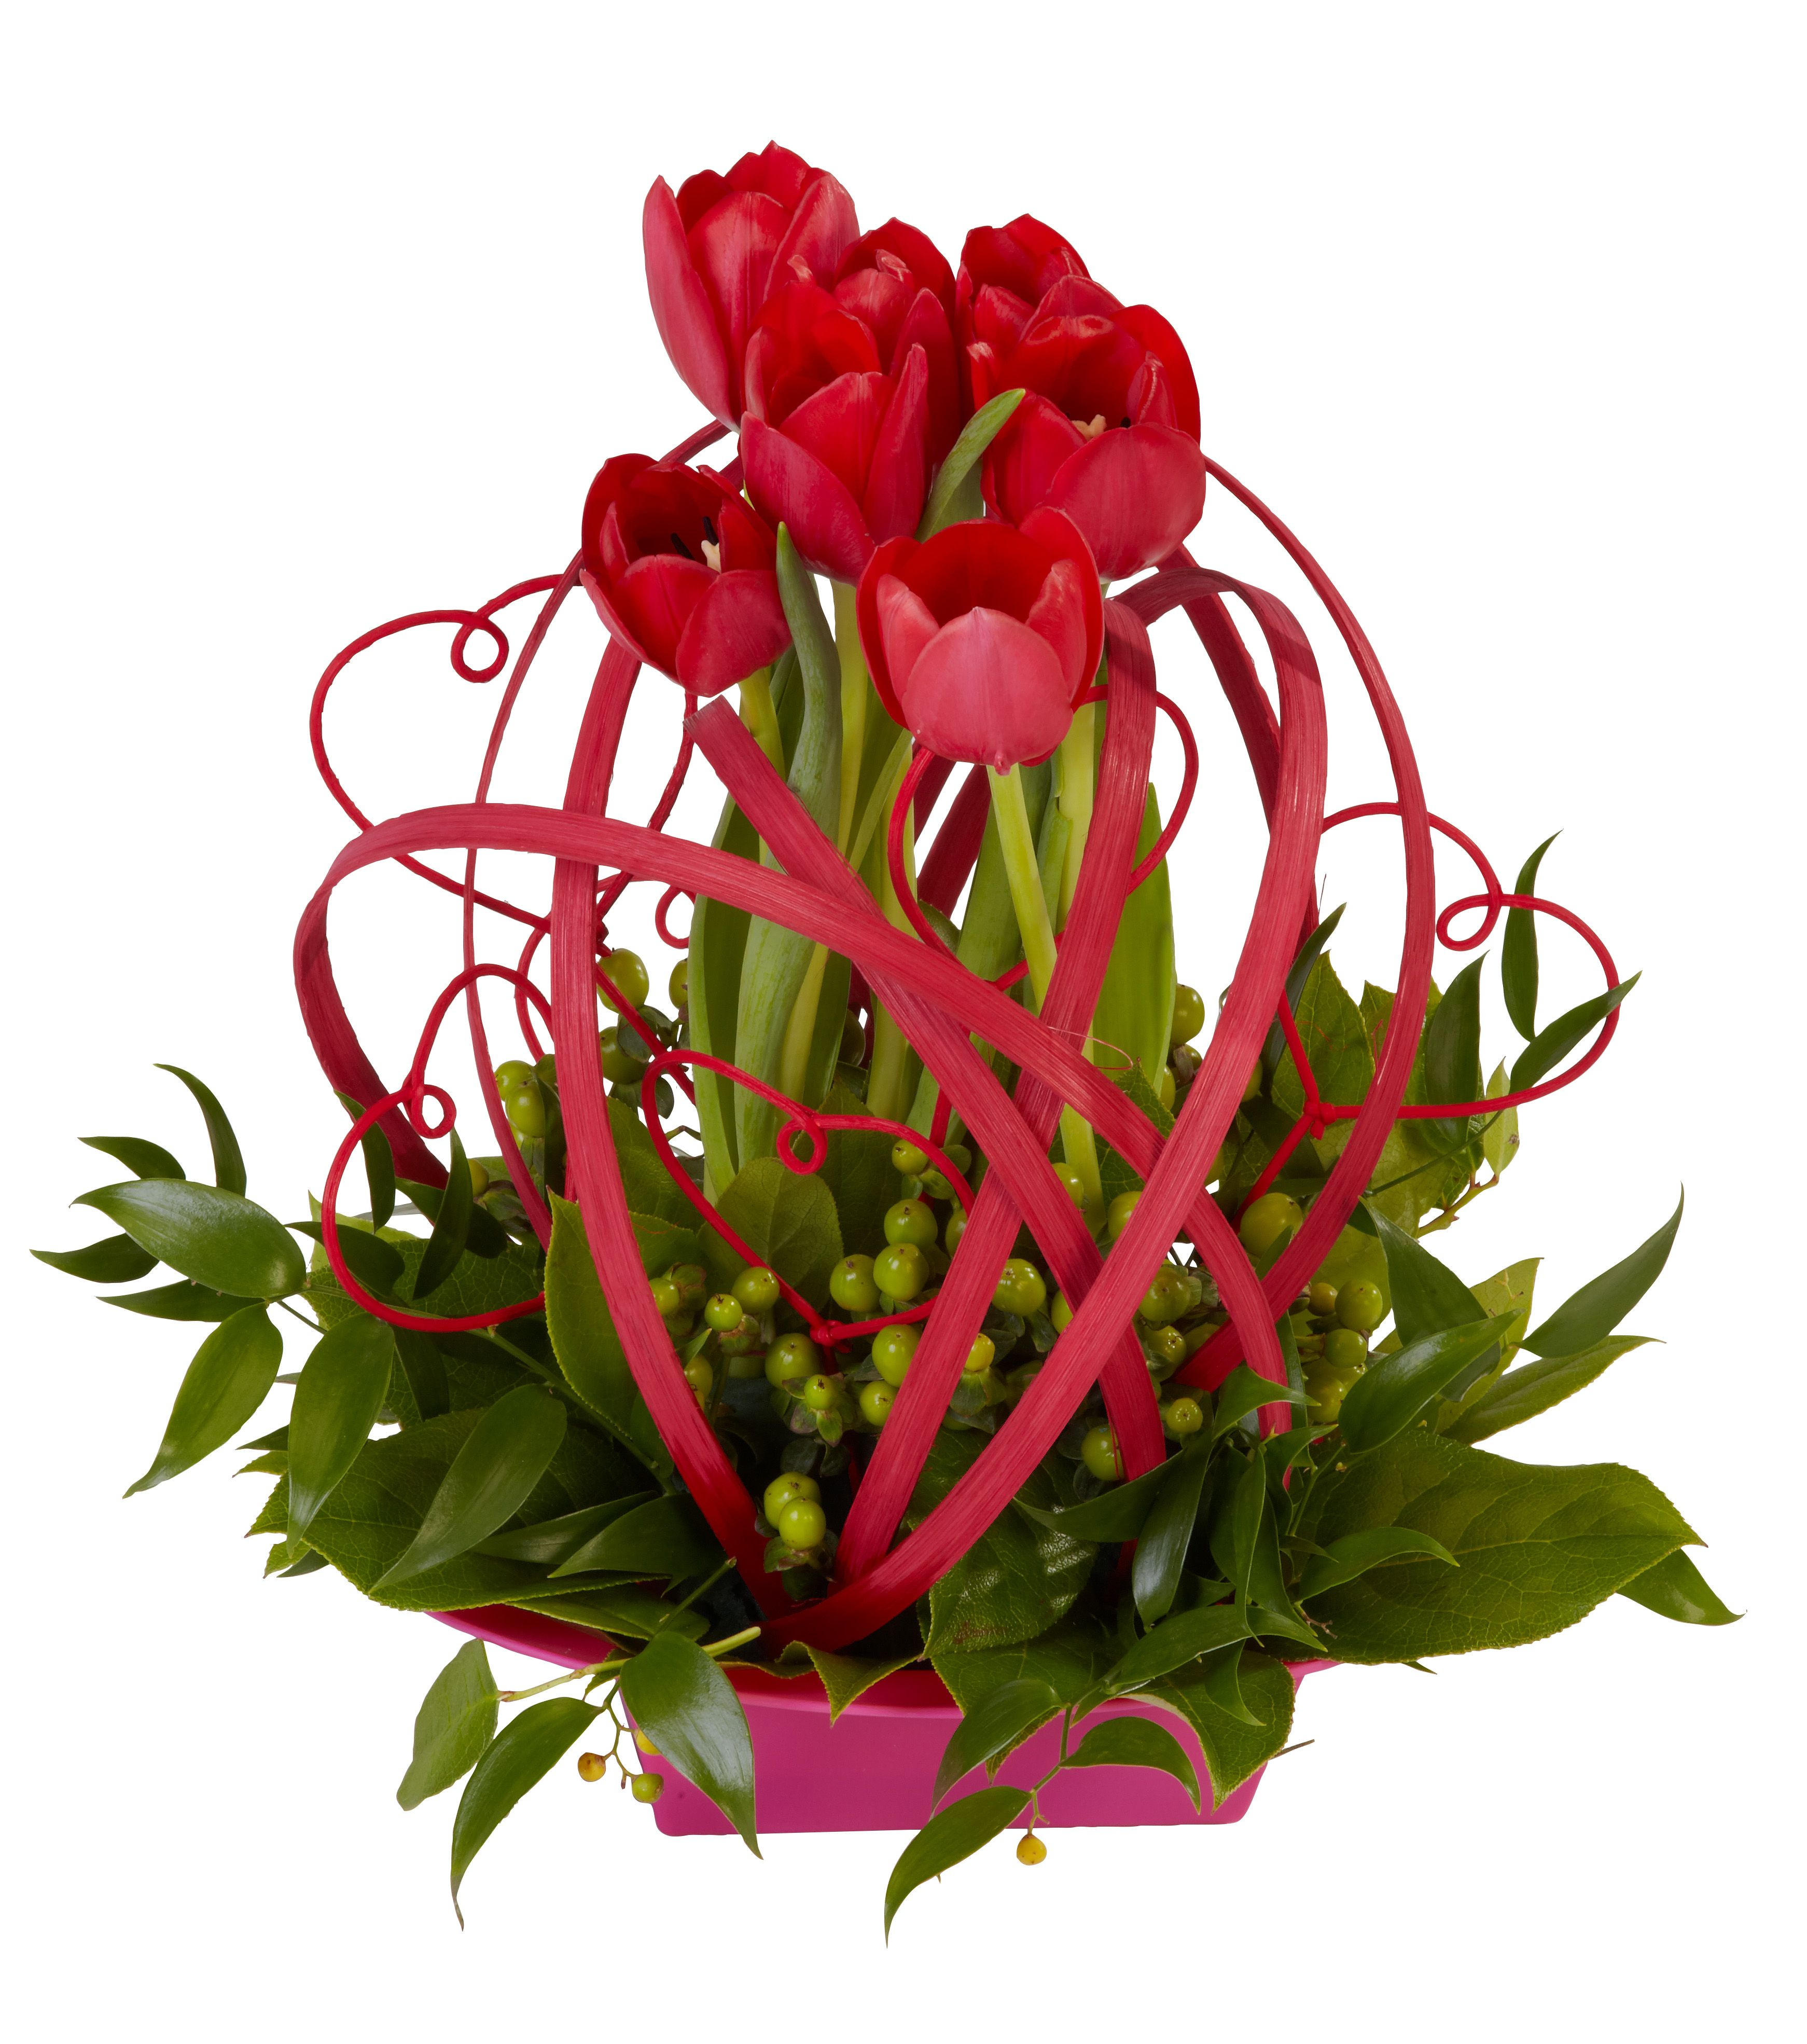 Types Of Flower Arrangement Shapes: OASIS Flat Cane And Midollino Shapes Accent This Trendy